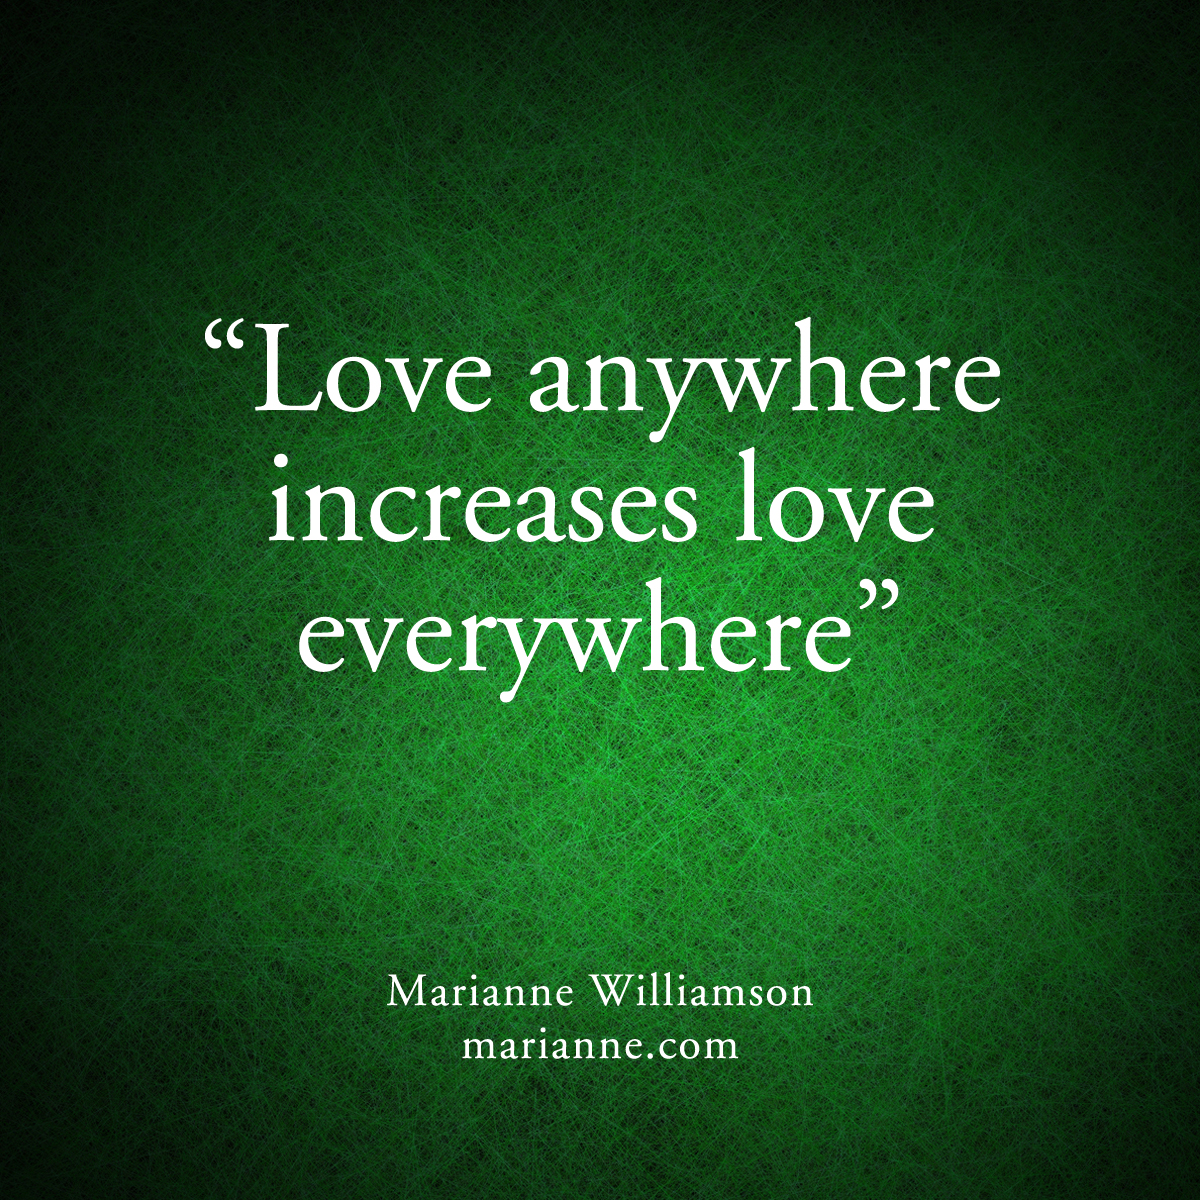 Shareable Quotes By Marianne Williamson Marianne Williamson